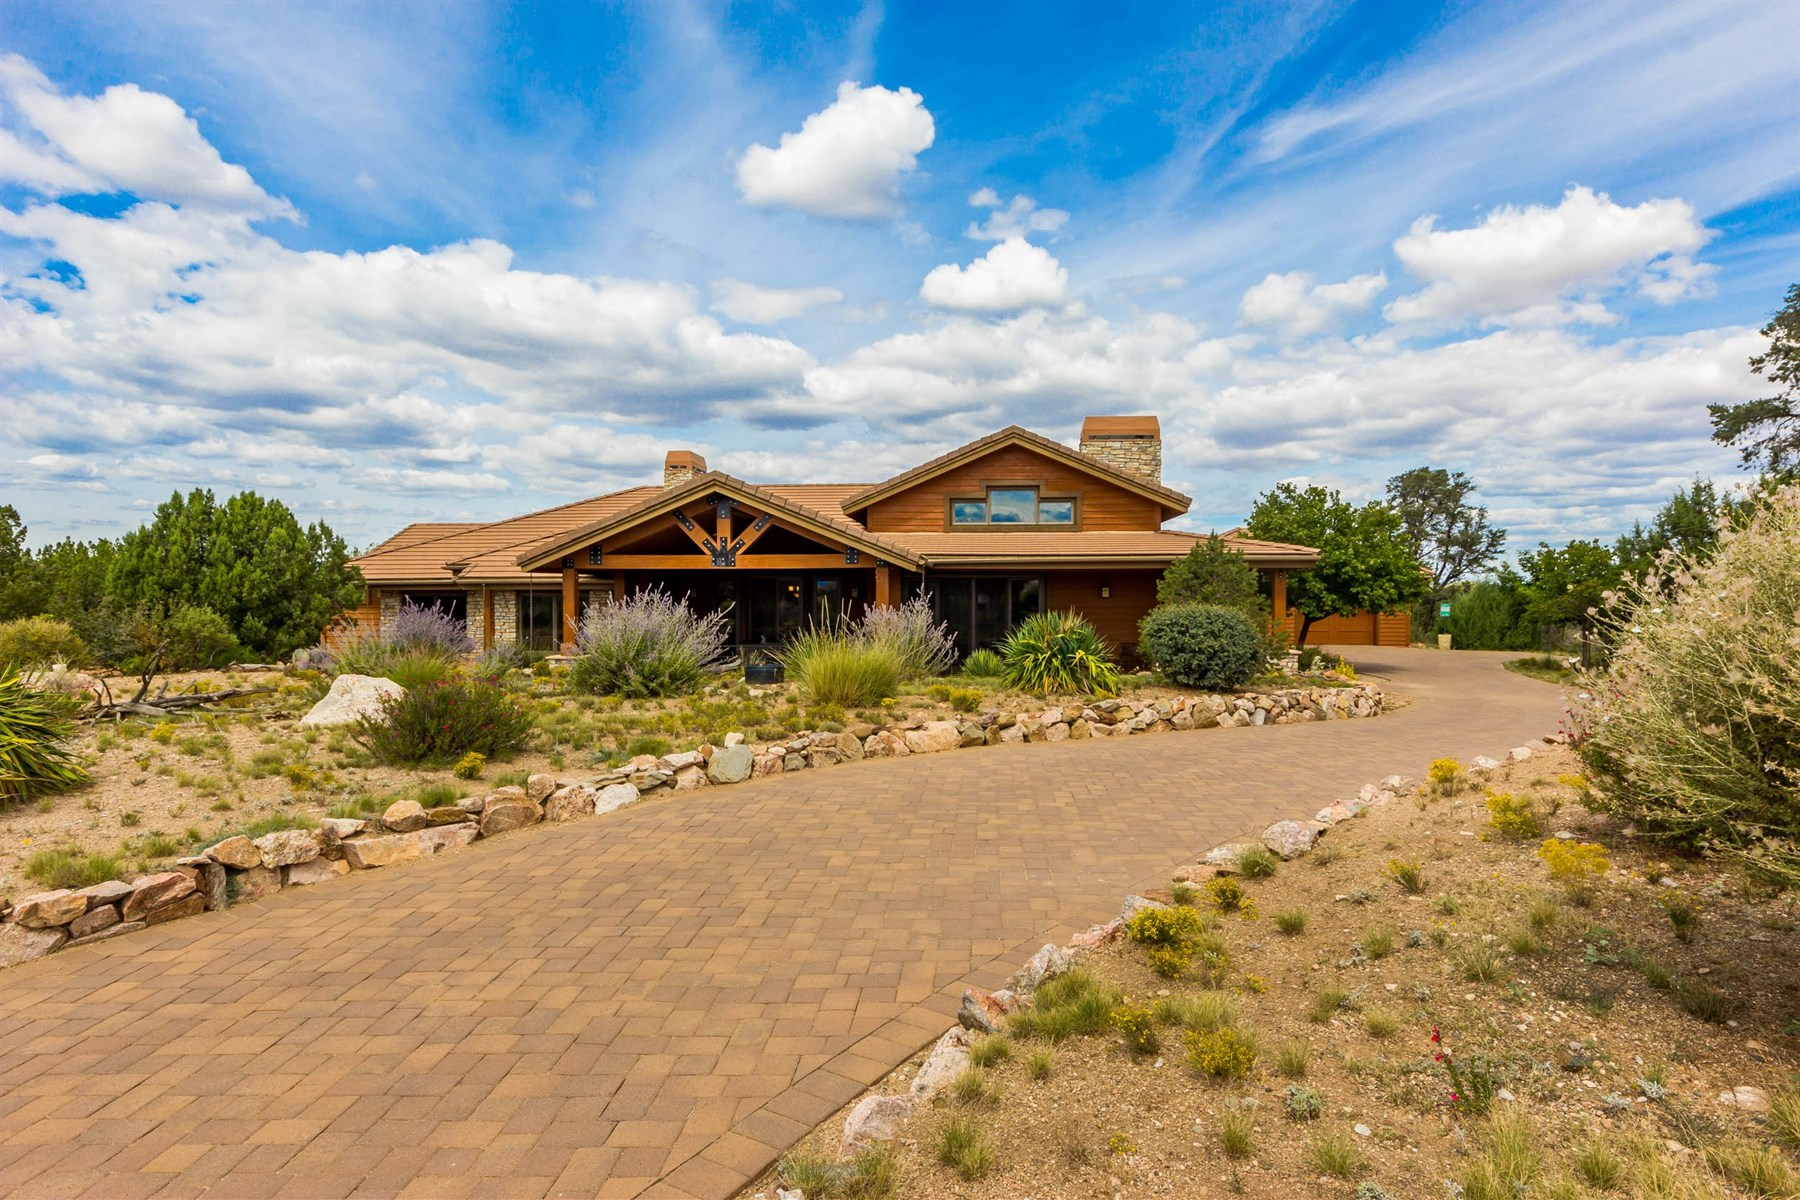 Частный односемейный дом для того Продажа на Gorgeous custom home designed to capture Granite Mountain views 5700 W Three Forks Rd Prescott, Аризона, 86305 Соединенные Штаты